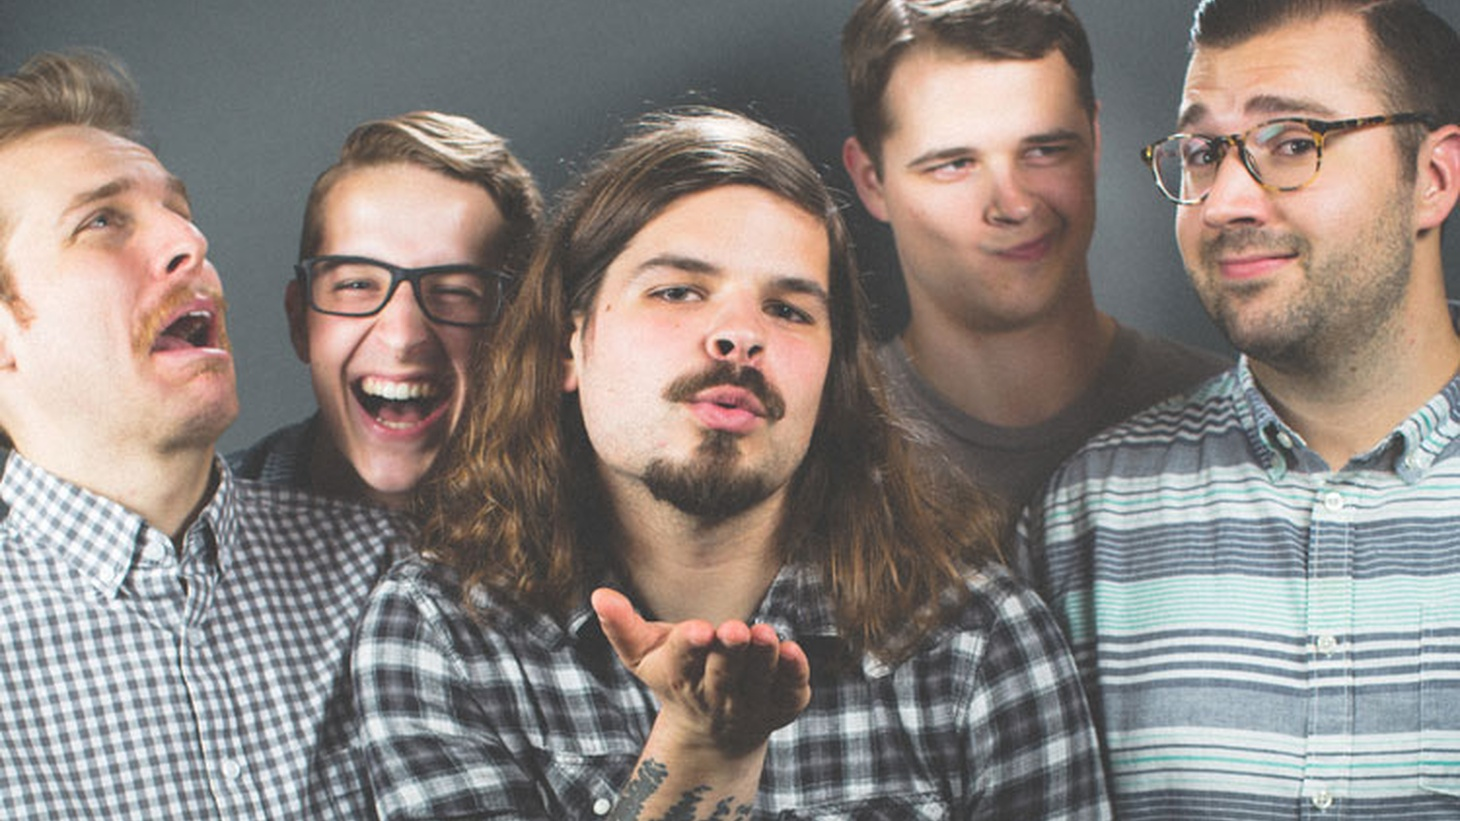 Portland's My Brothers & I is a group of siblings and their childhood friends making music full of infectious grooves and highlighted by smooth vocal harmonies.